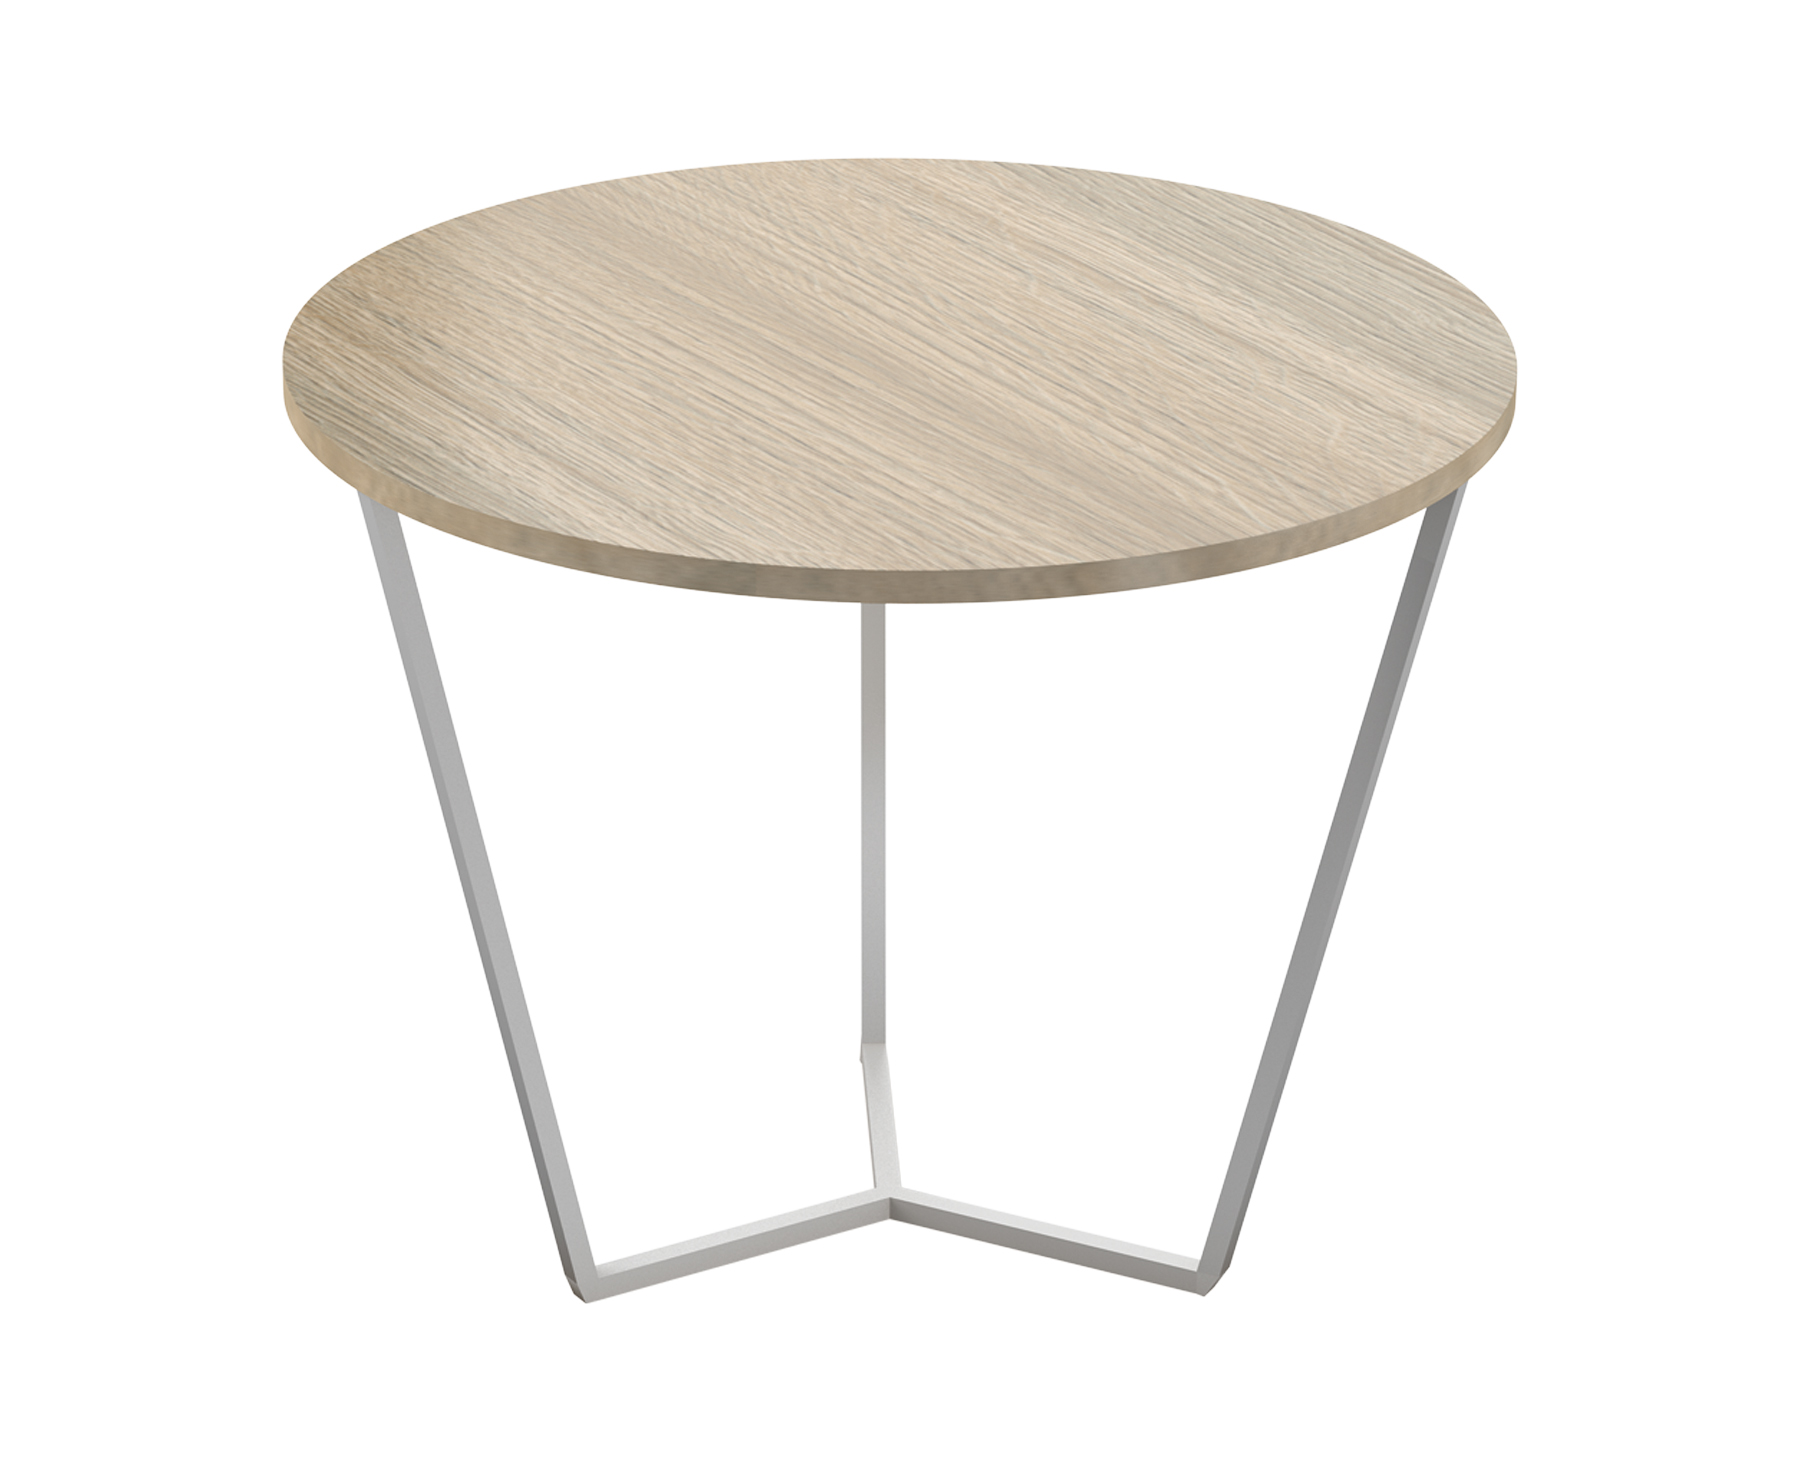 Montana Images 2019 CD030 Side TablesSIde Table CTB010